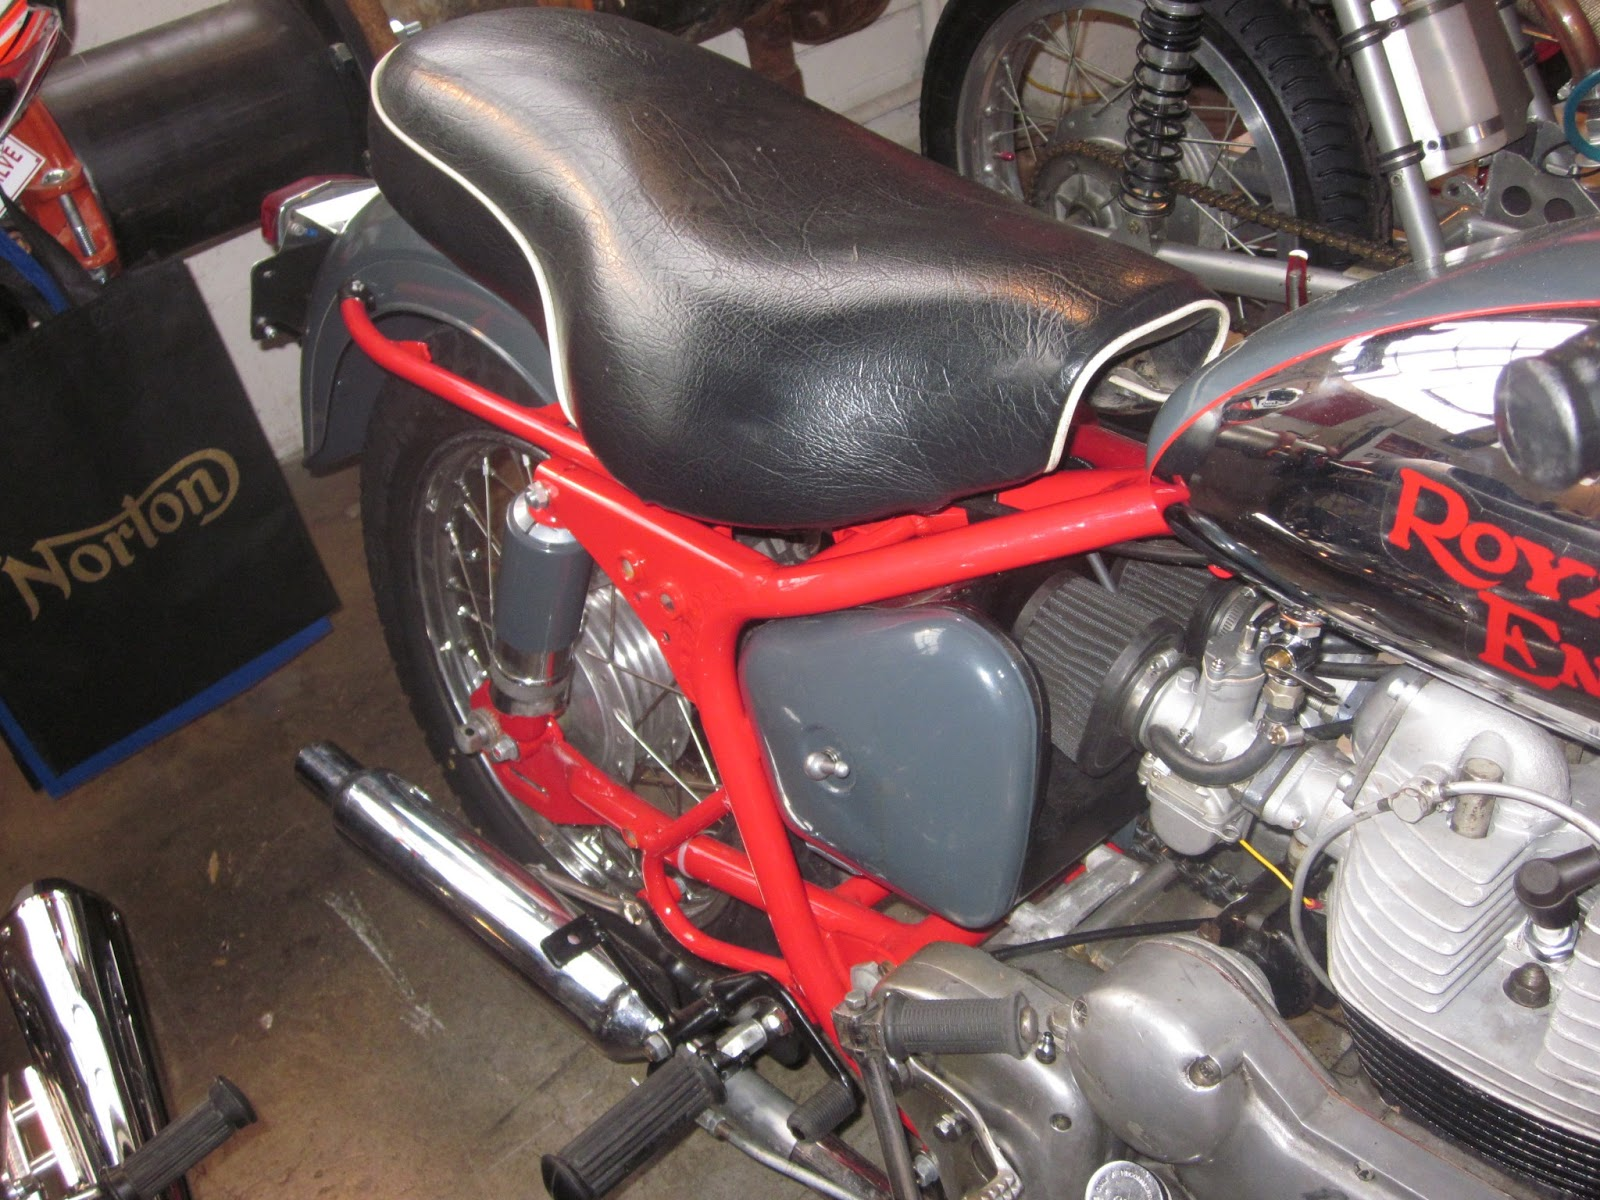 Oldmotodude 1966 Royal Enfield Interceptor On Display At